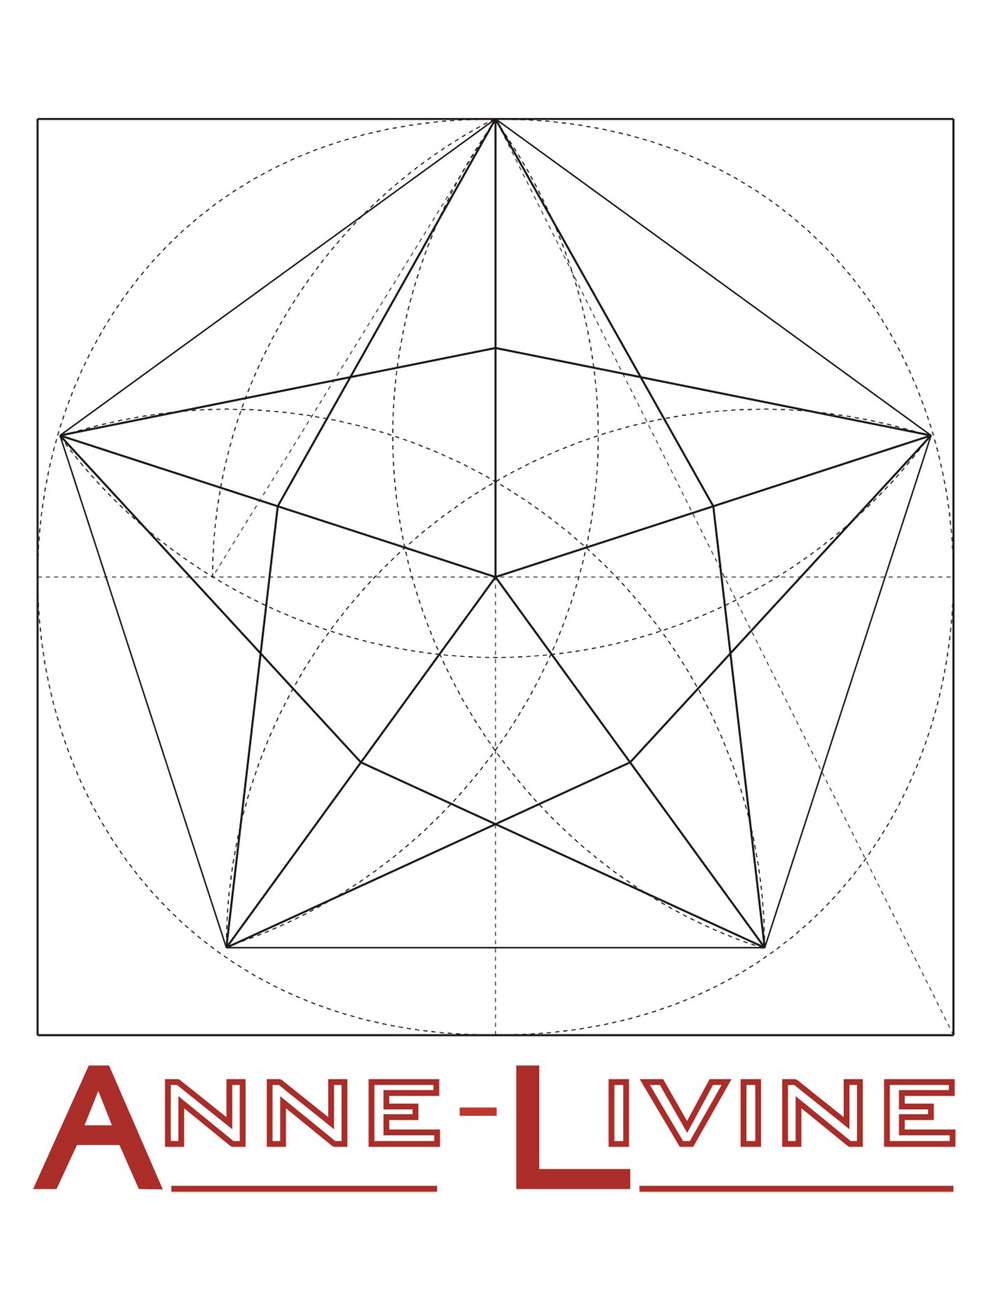 Anne-Livine Architectuur